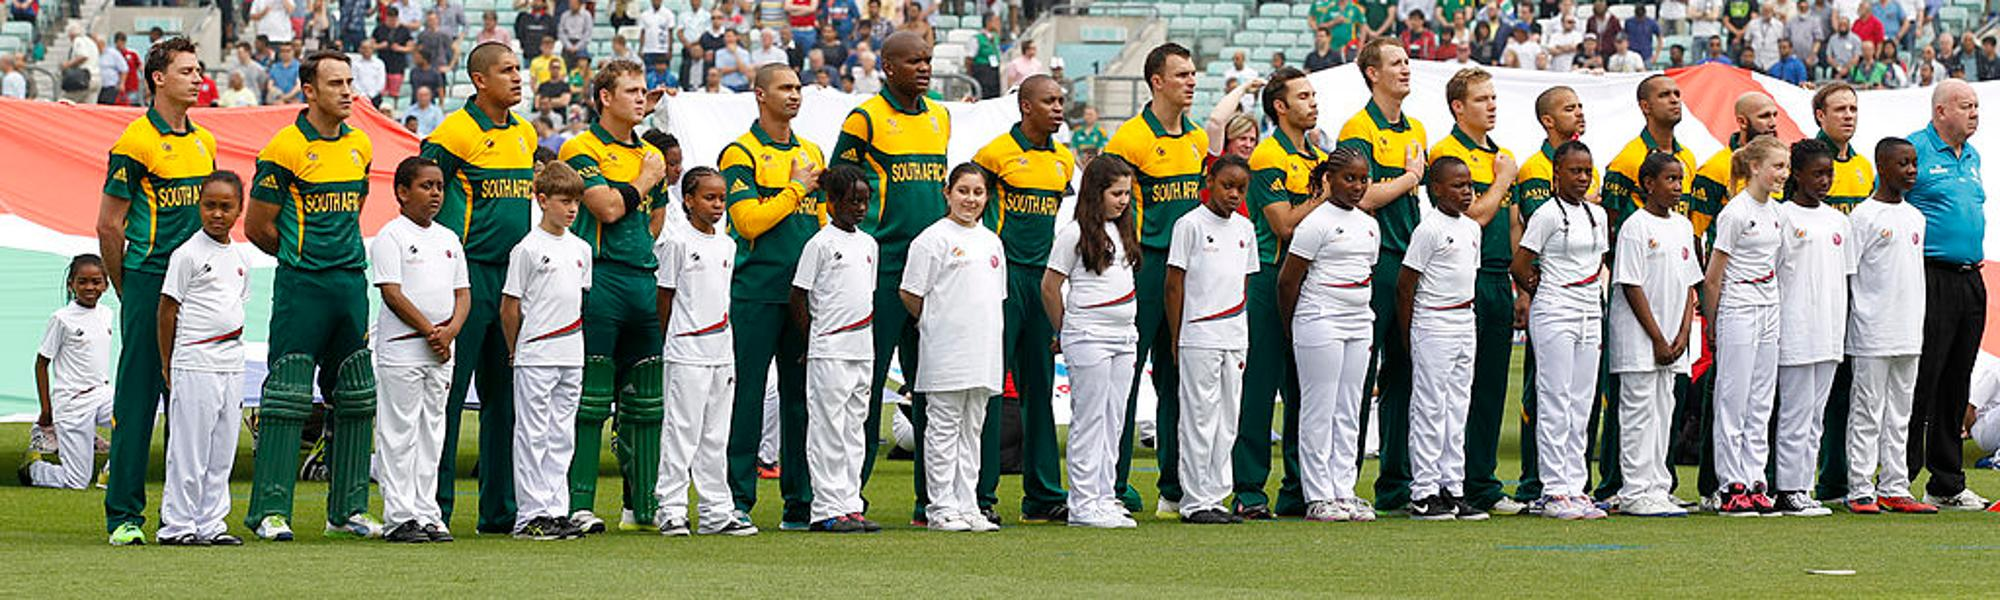 South Africa 2013 Champions Trophy